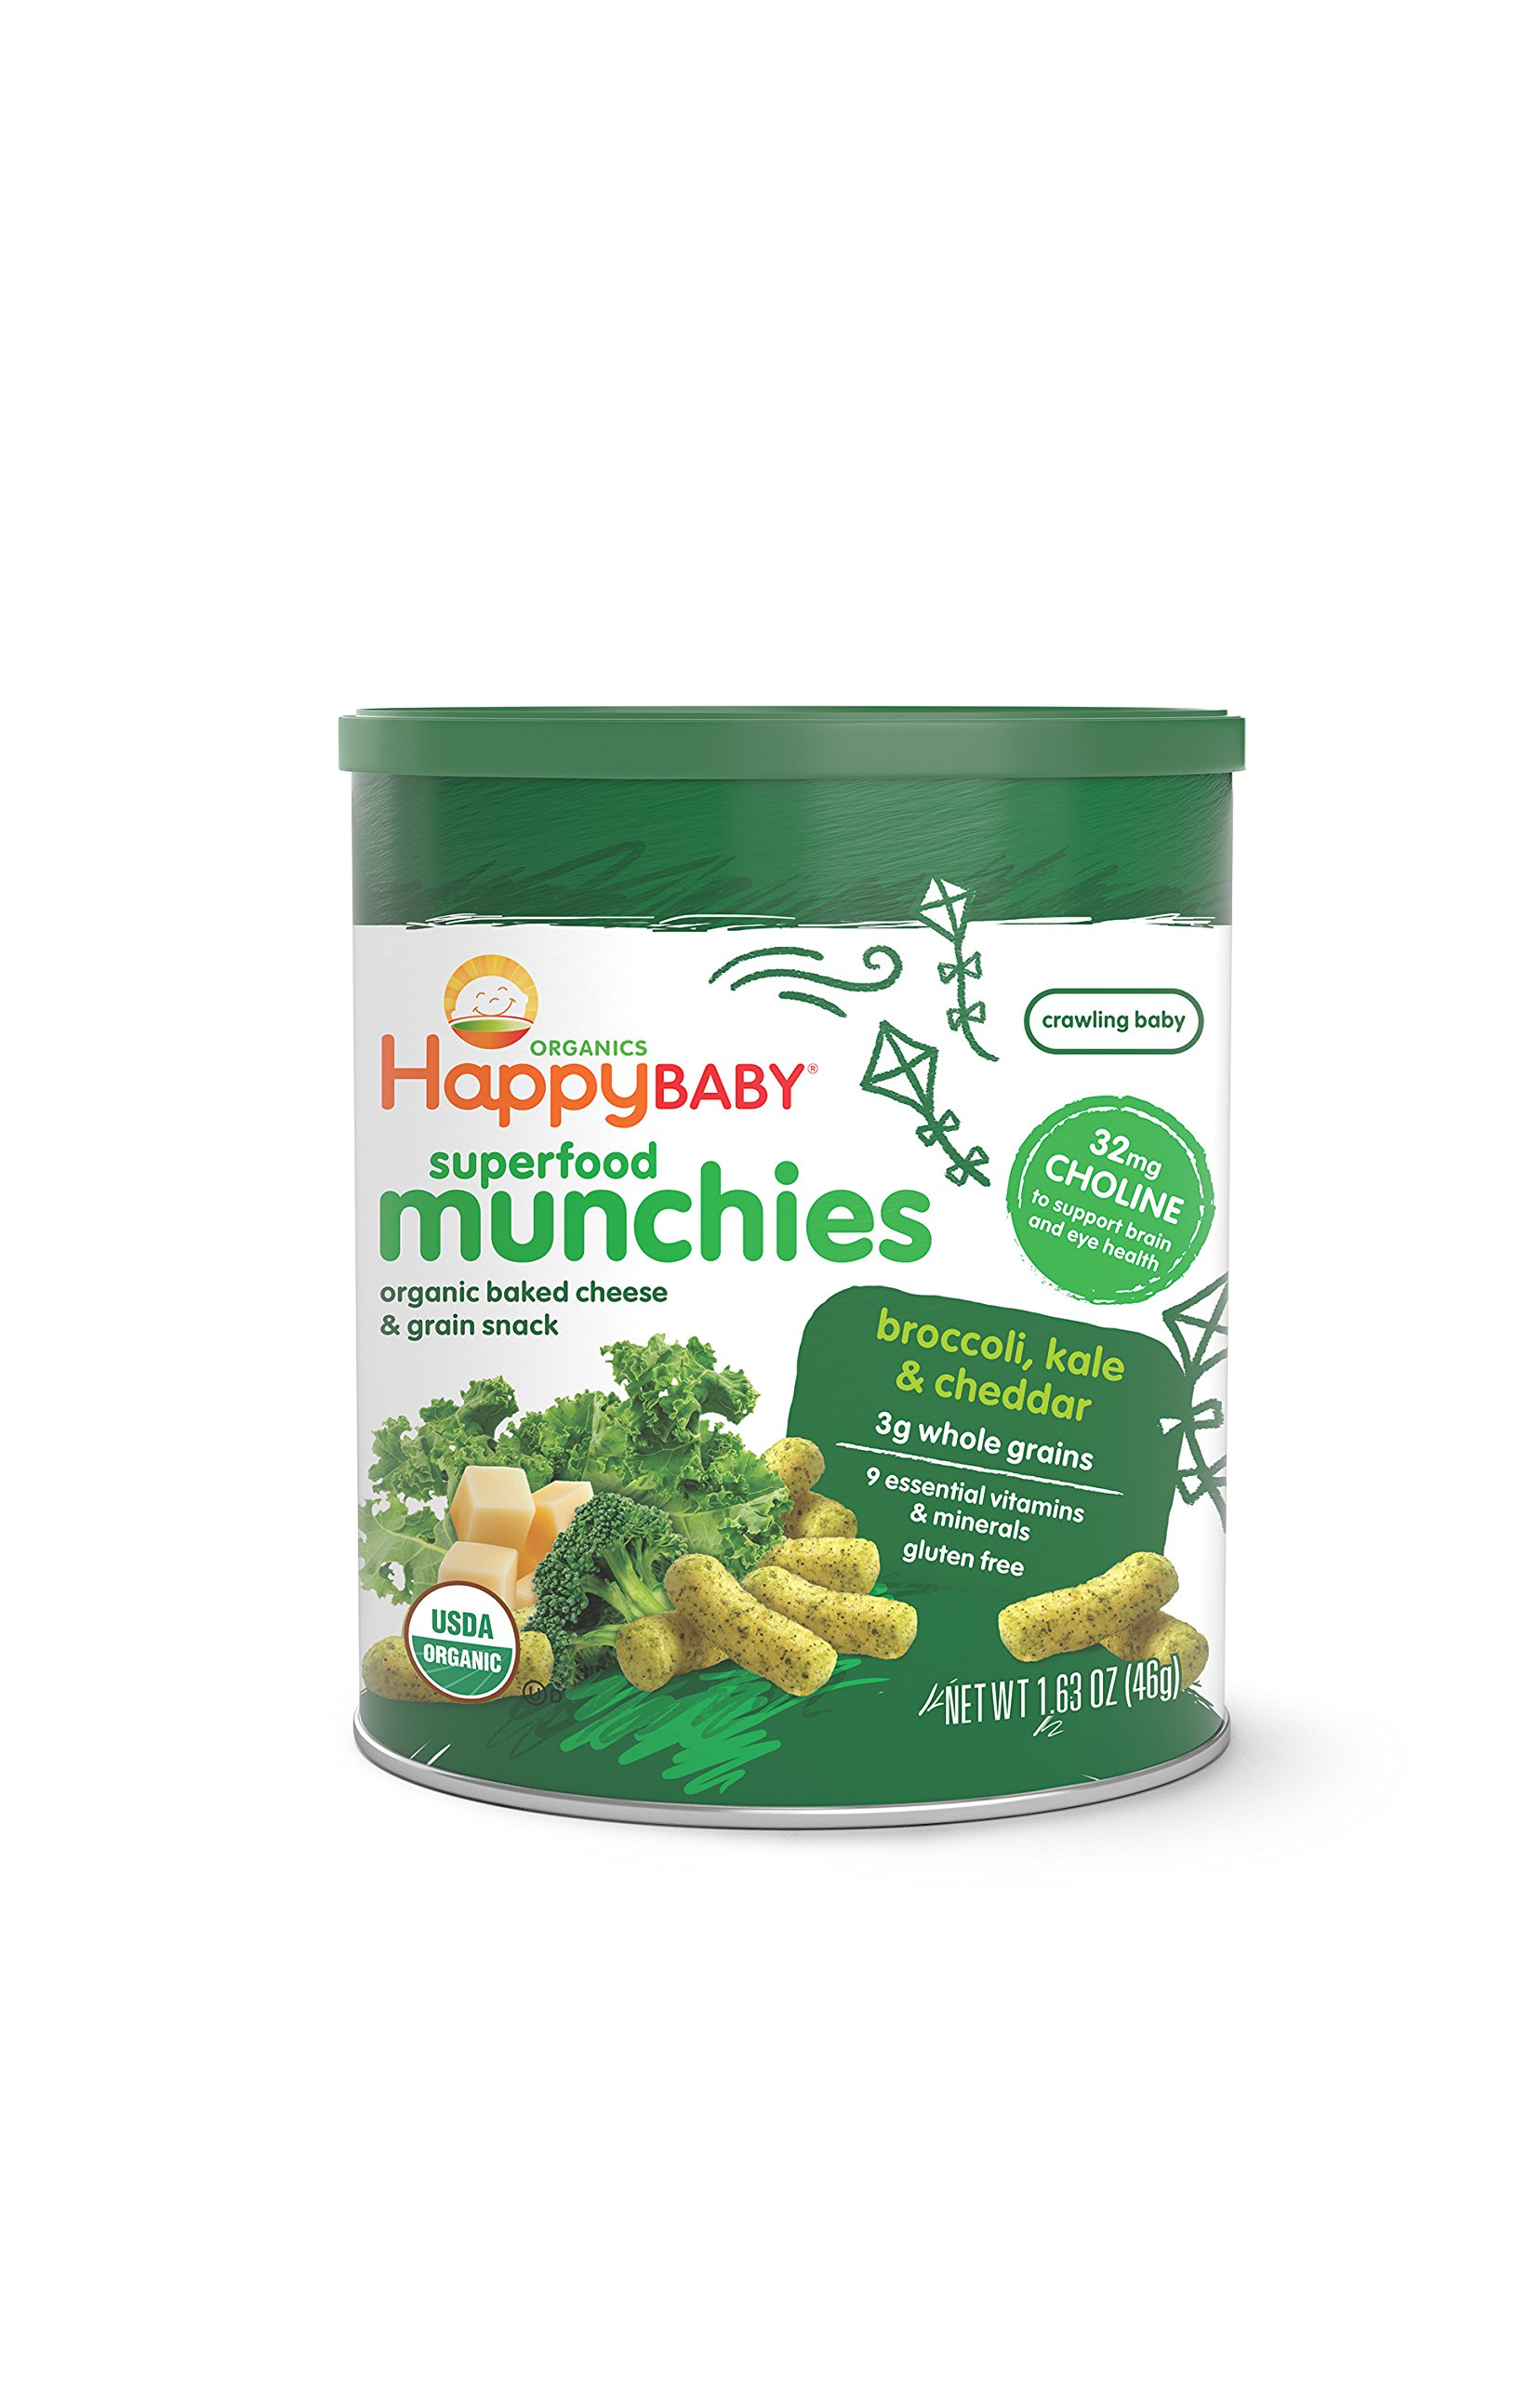 Happy Baby Organic Superfood Munchies Baked Cheese & Grain Snacks Broccoli Kale & Cheddar Cheese 1.63 Ounce (Pack of 6) Organic, Non-GMO, BPA-Free Packaging